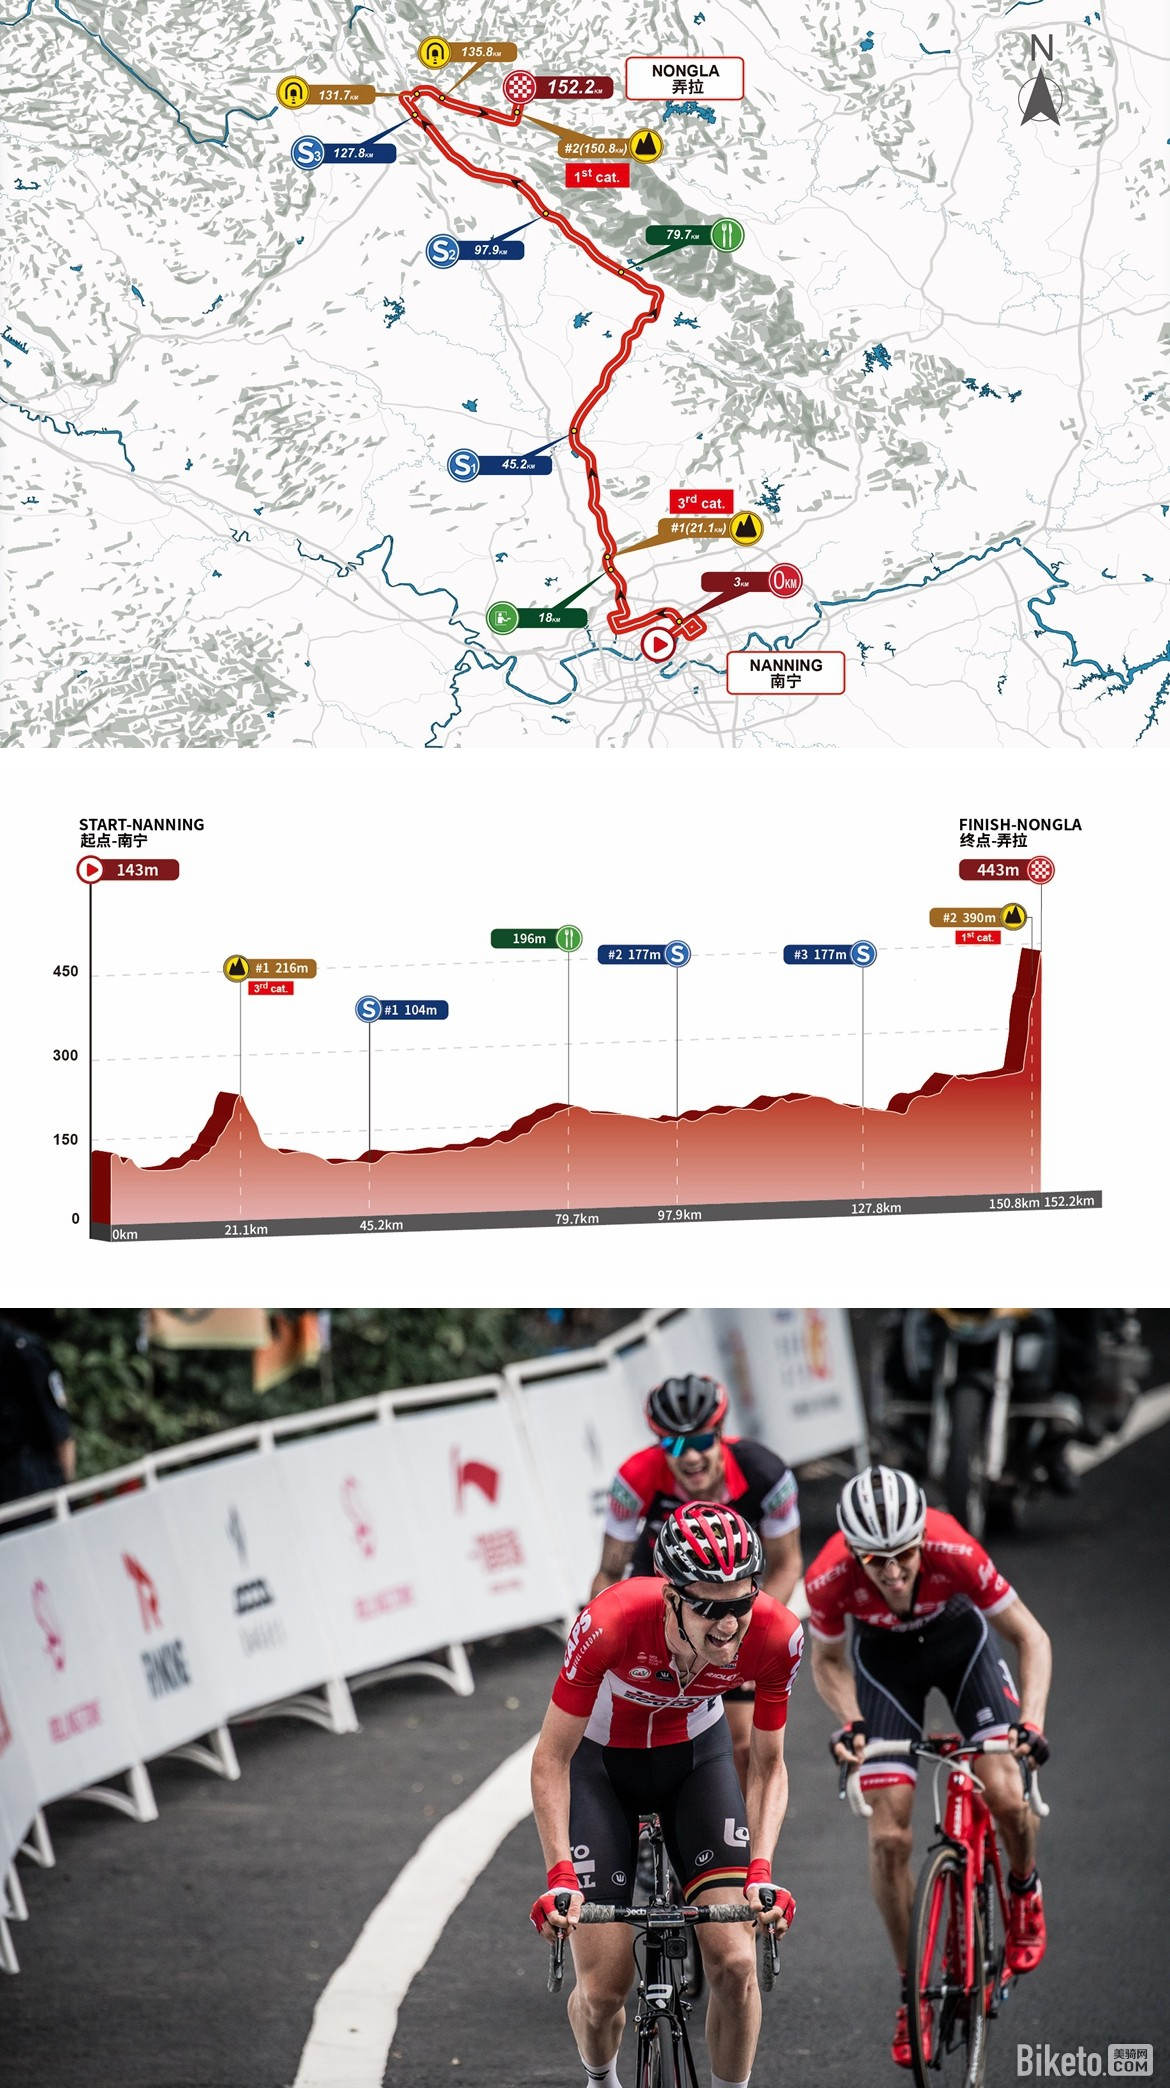 2018 tour of guangxi stage 4